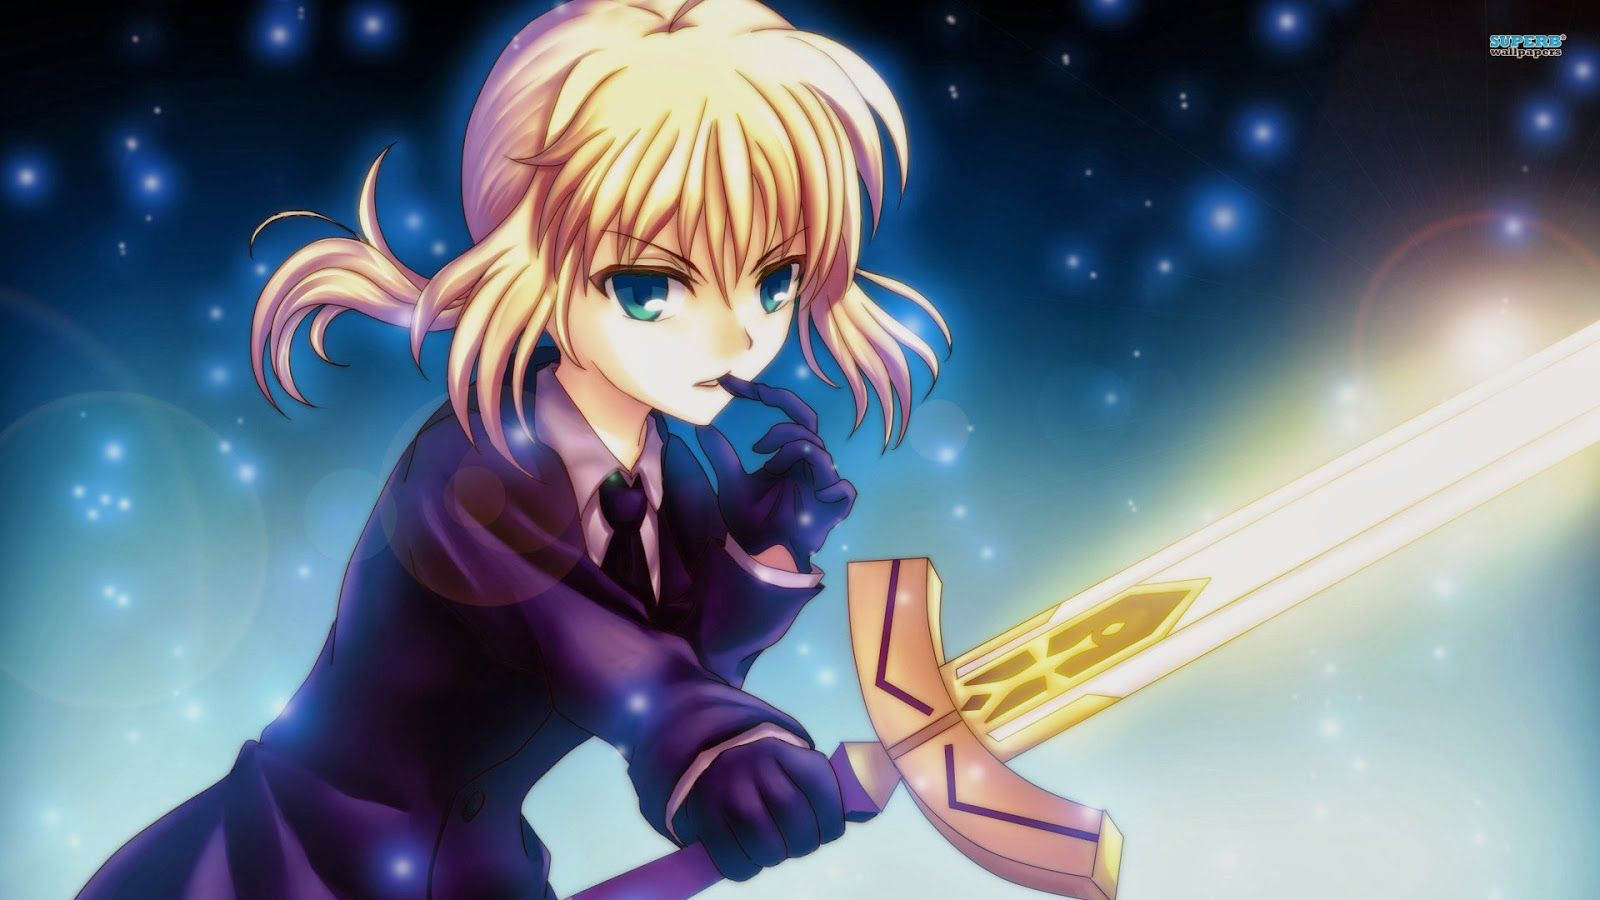 Pin By Nadia Seo On Hd Wallpapers Anime Fate Stay Night Anime Fate Zero Wallpaper anime fate stay saber fate